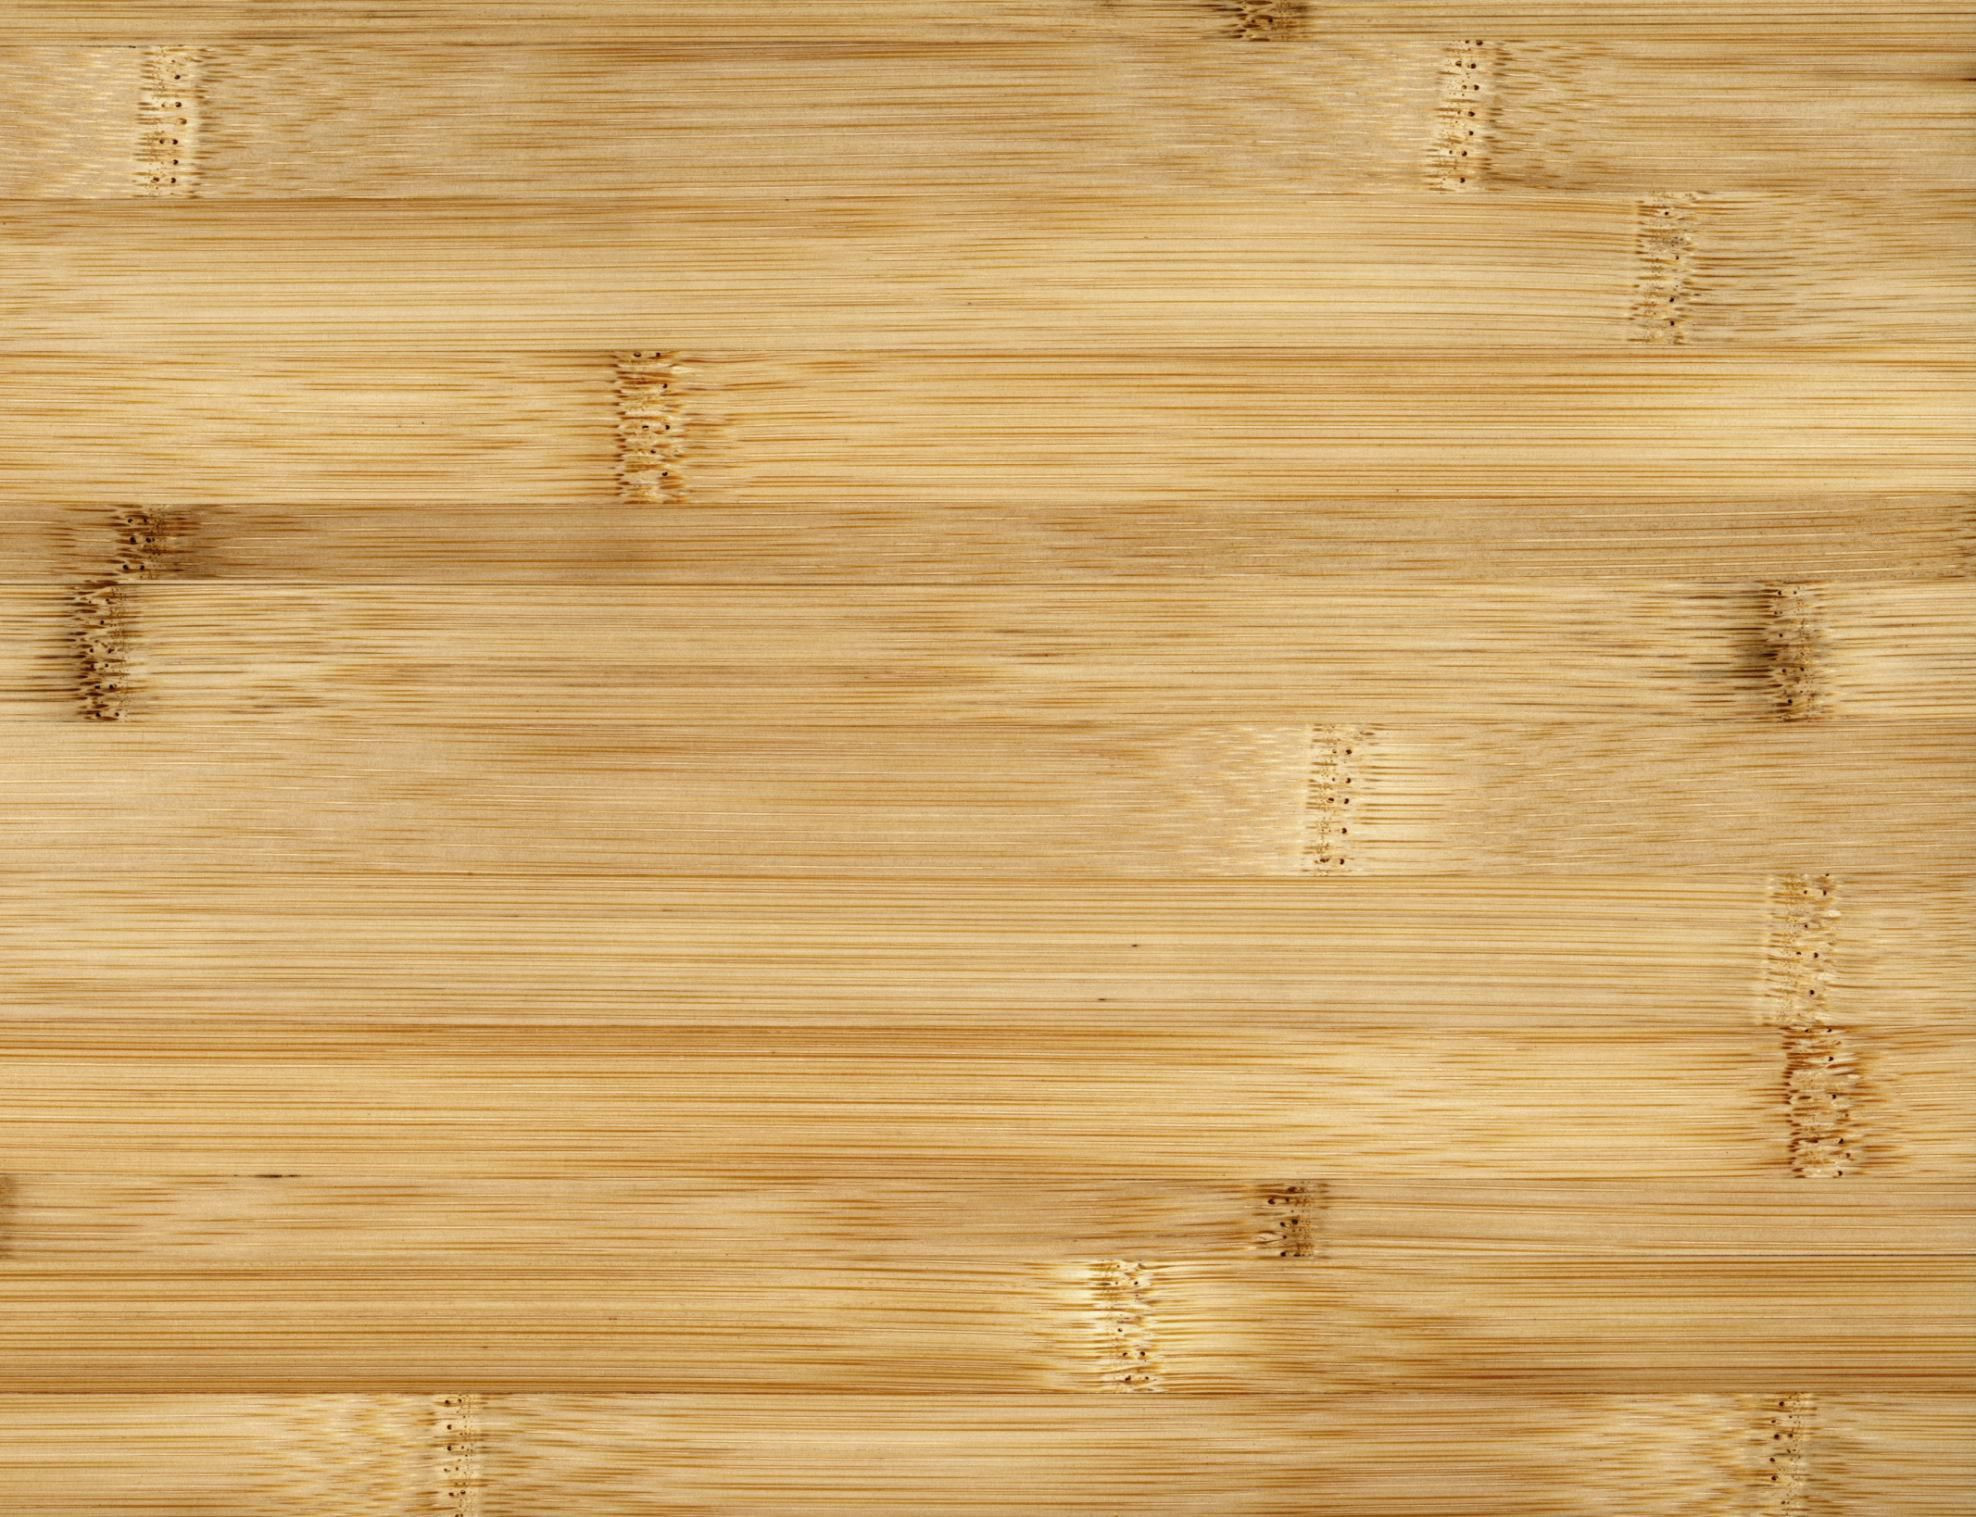 Hardwood Floor Refinishing Albuquerque Of How to Clean Bamboo Flooring within 200266305 001 56a2fd815f9b58b7d0d000cd